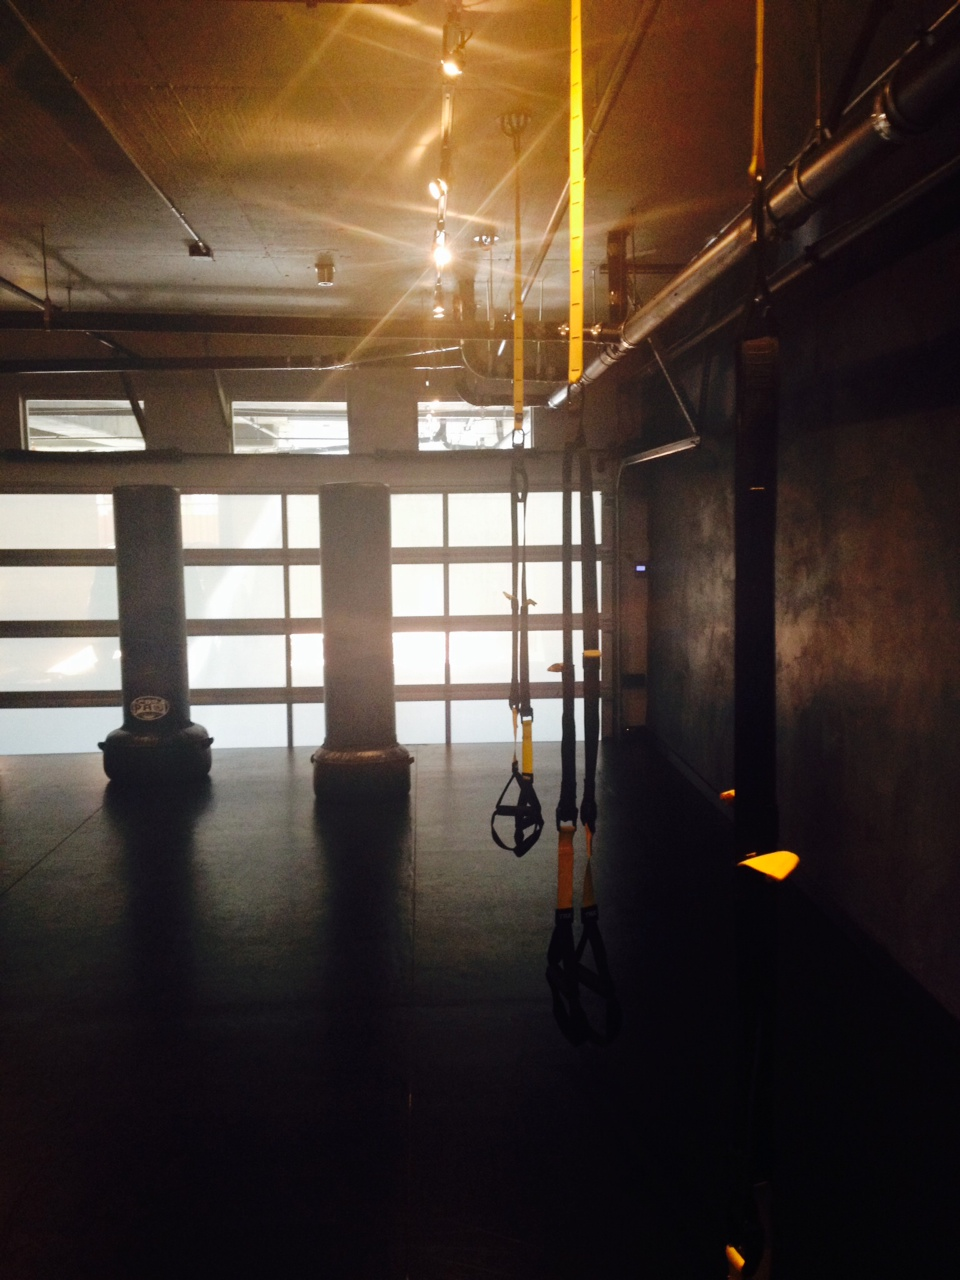 TRX straps are anchored to the ceiling and allow you to use your body weight and gravity to do any number of super-challenging moves.